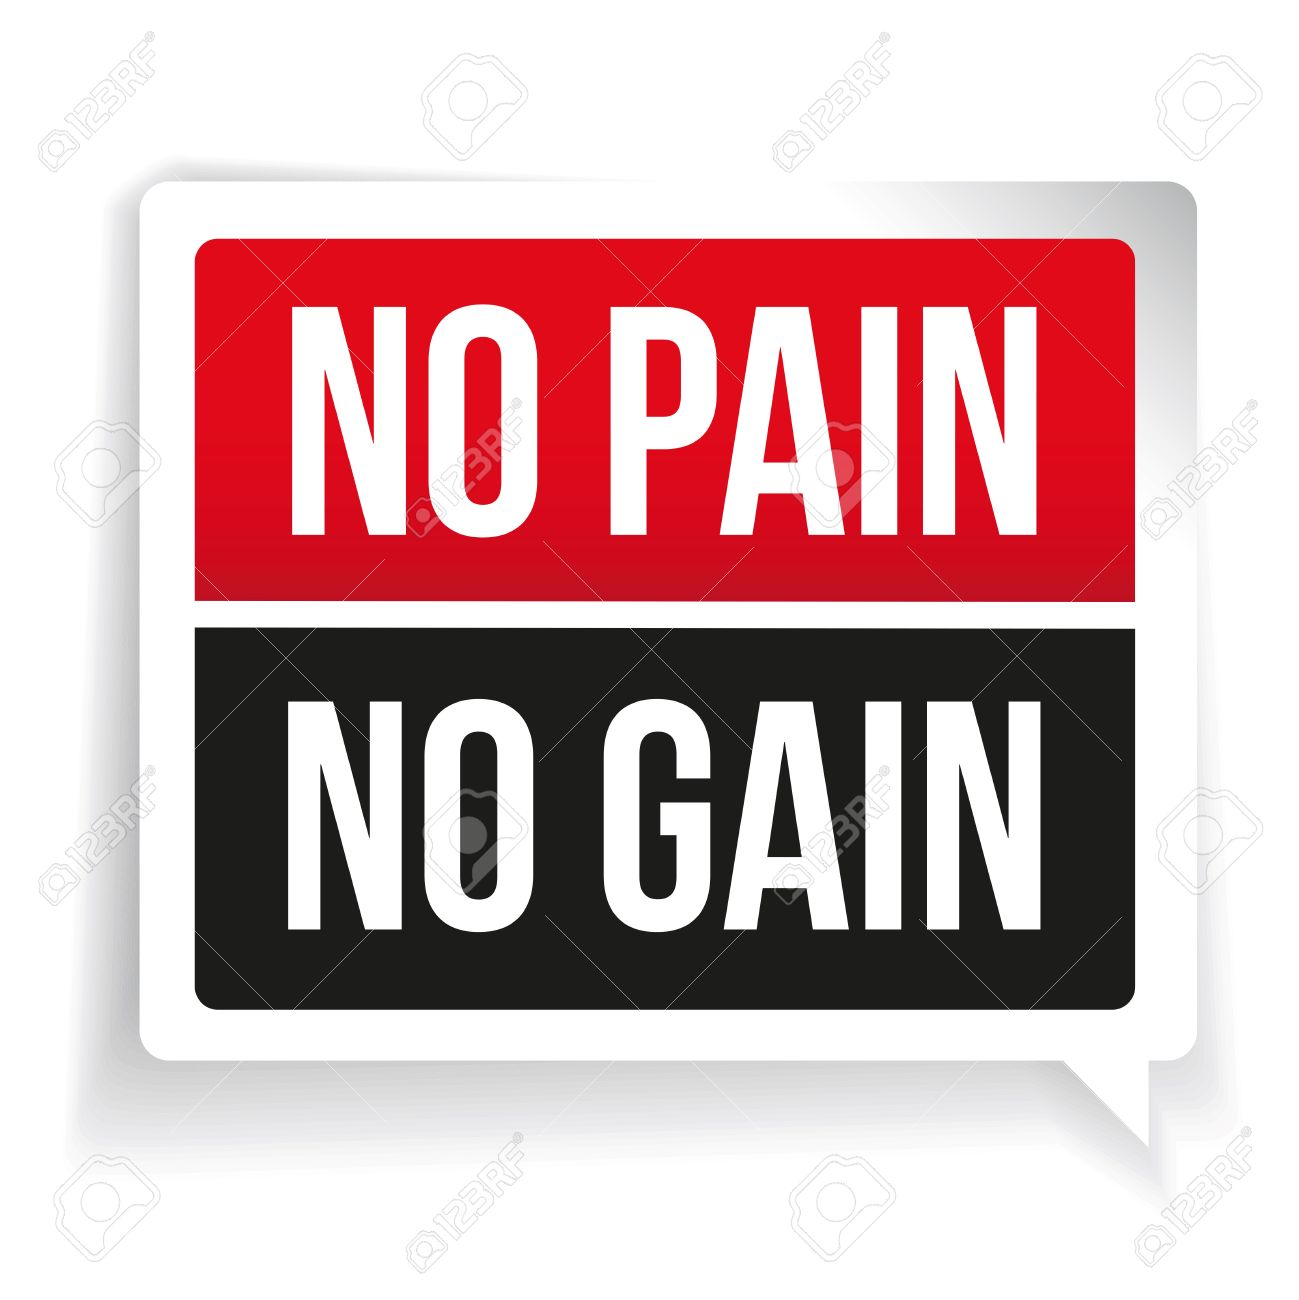 No Pain No Gain Workout And Fitness Motivation Quote Royalty Free